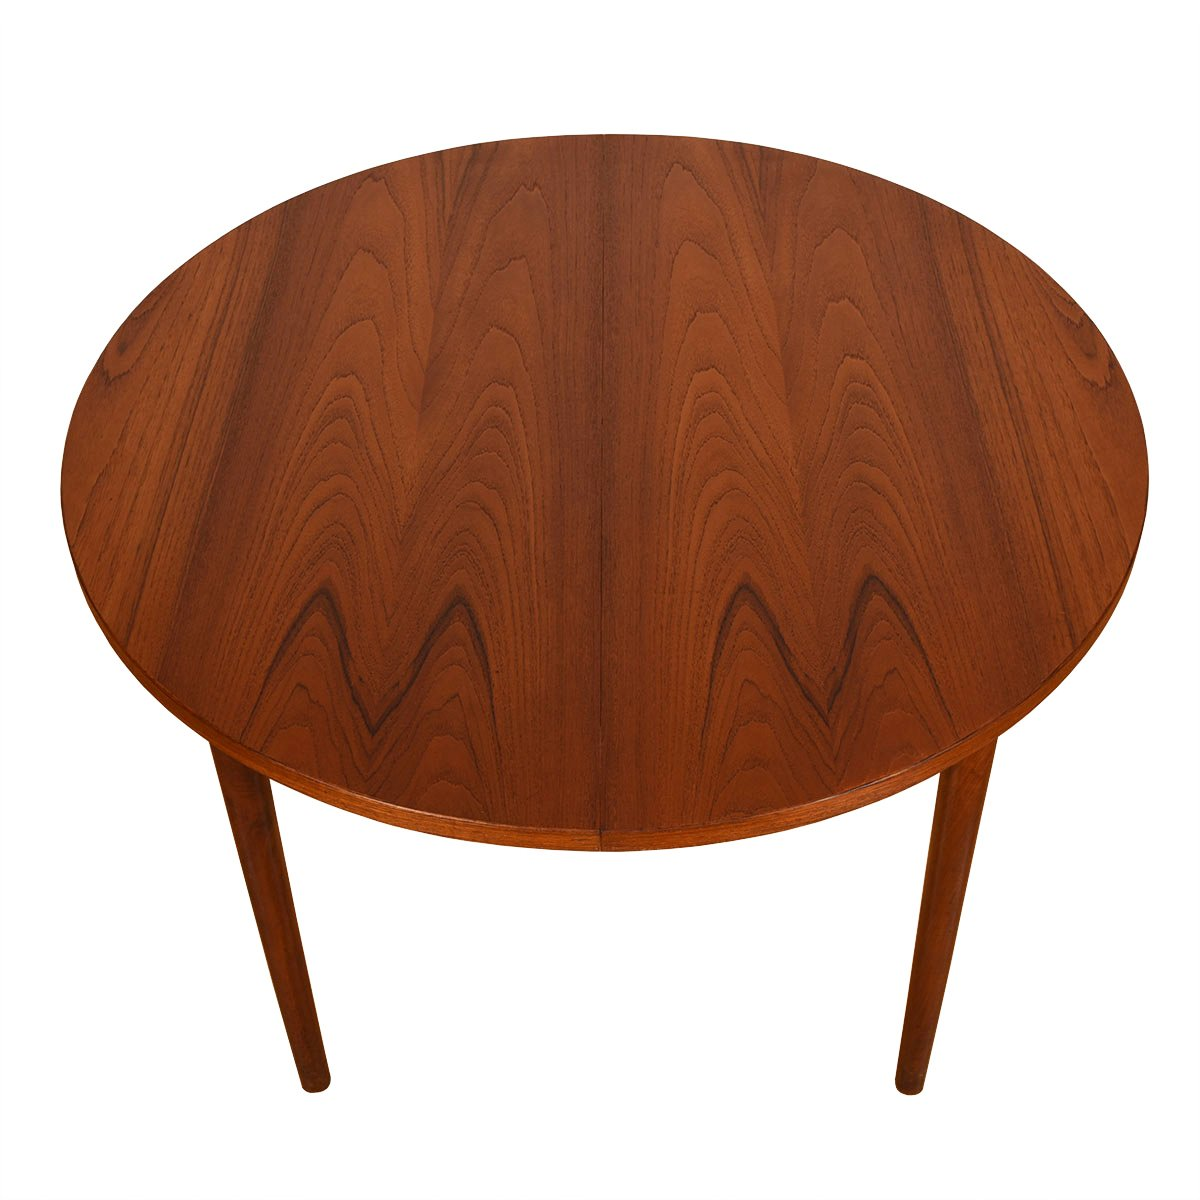 Small Danish Teak Expanding Dining Table w/ Gorgeous Grain